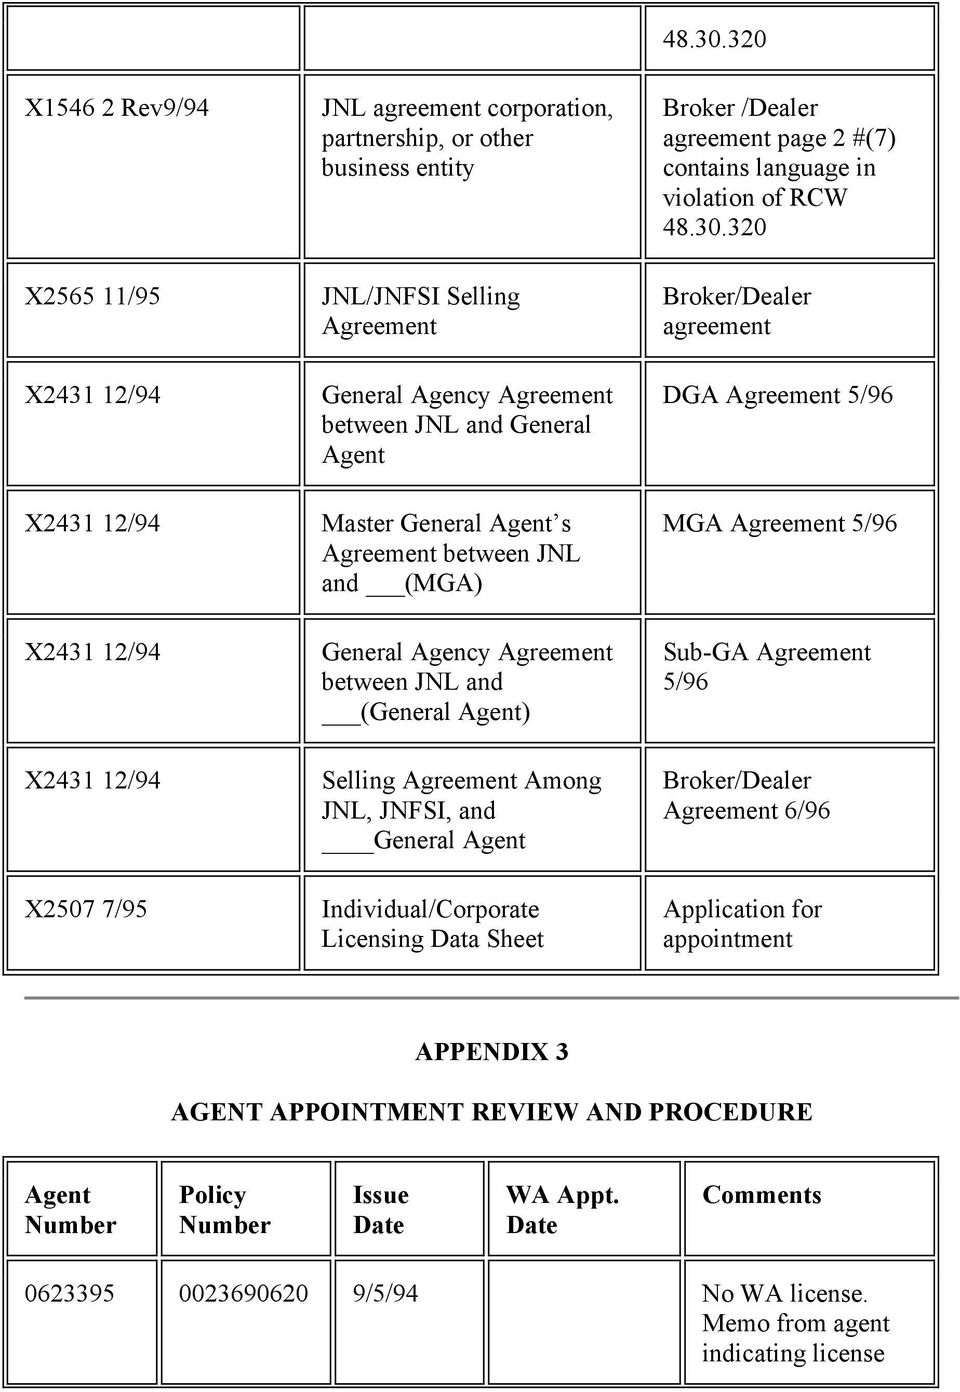 Agent Individual/Corporate Licensing Data Sheet 48.30.